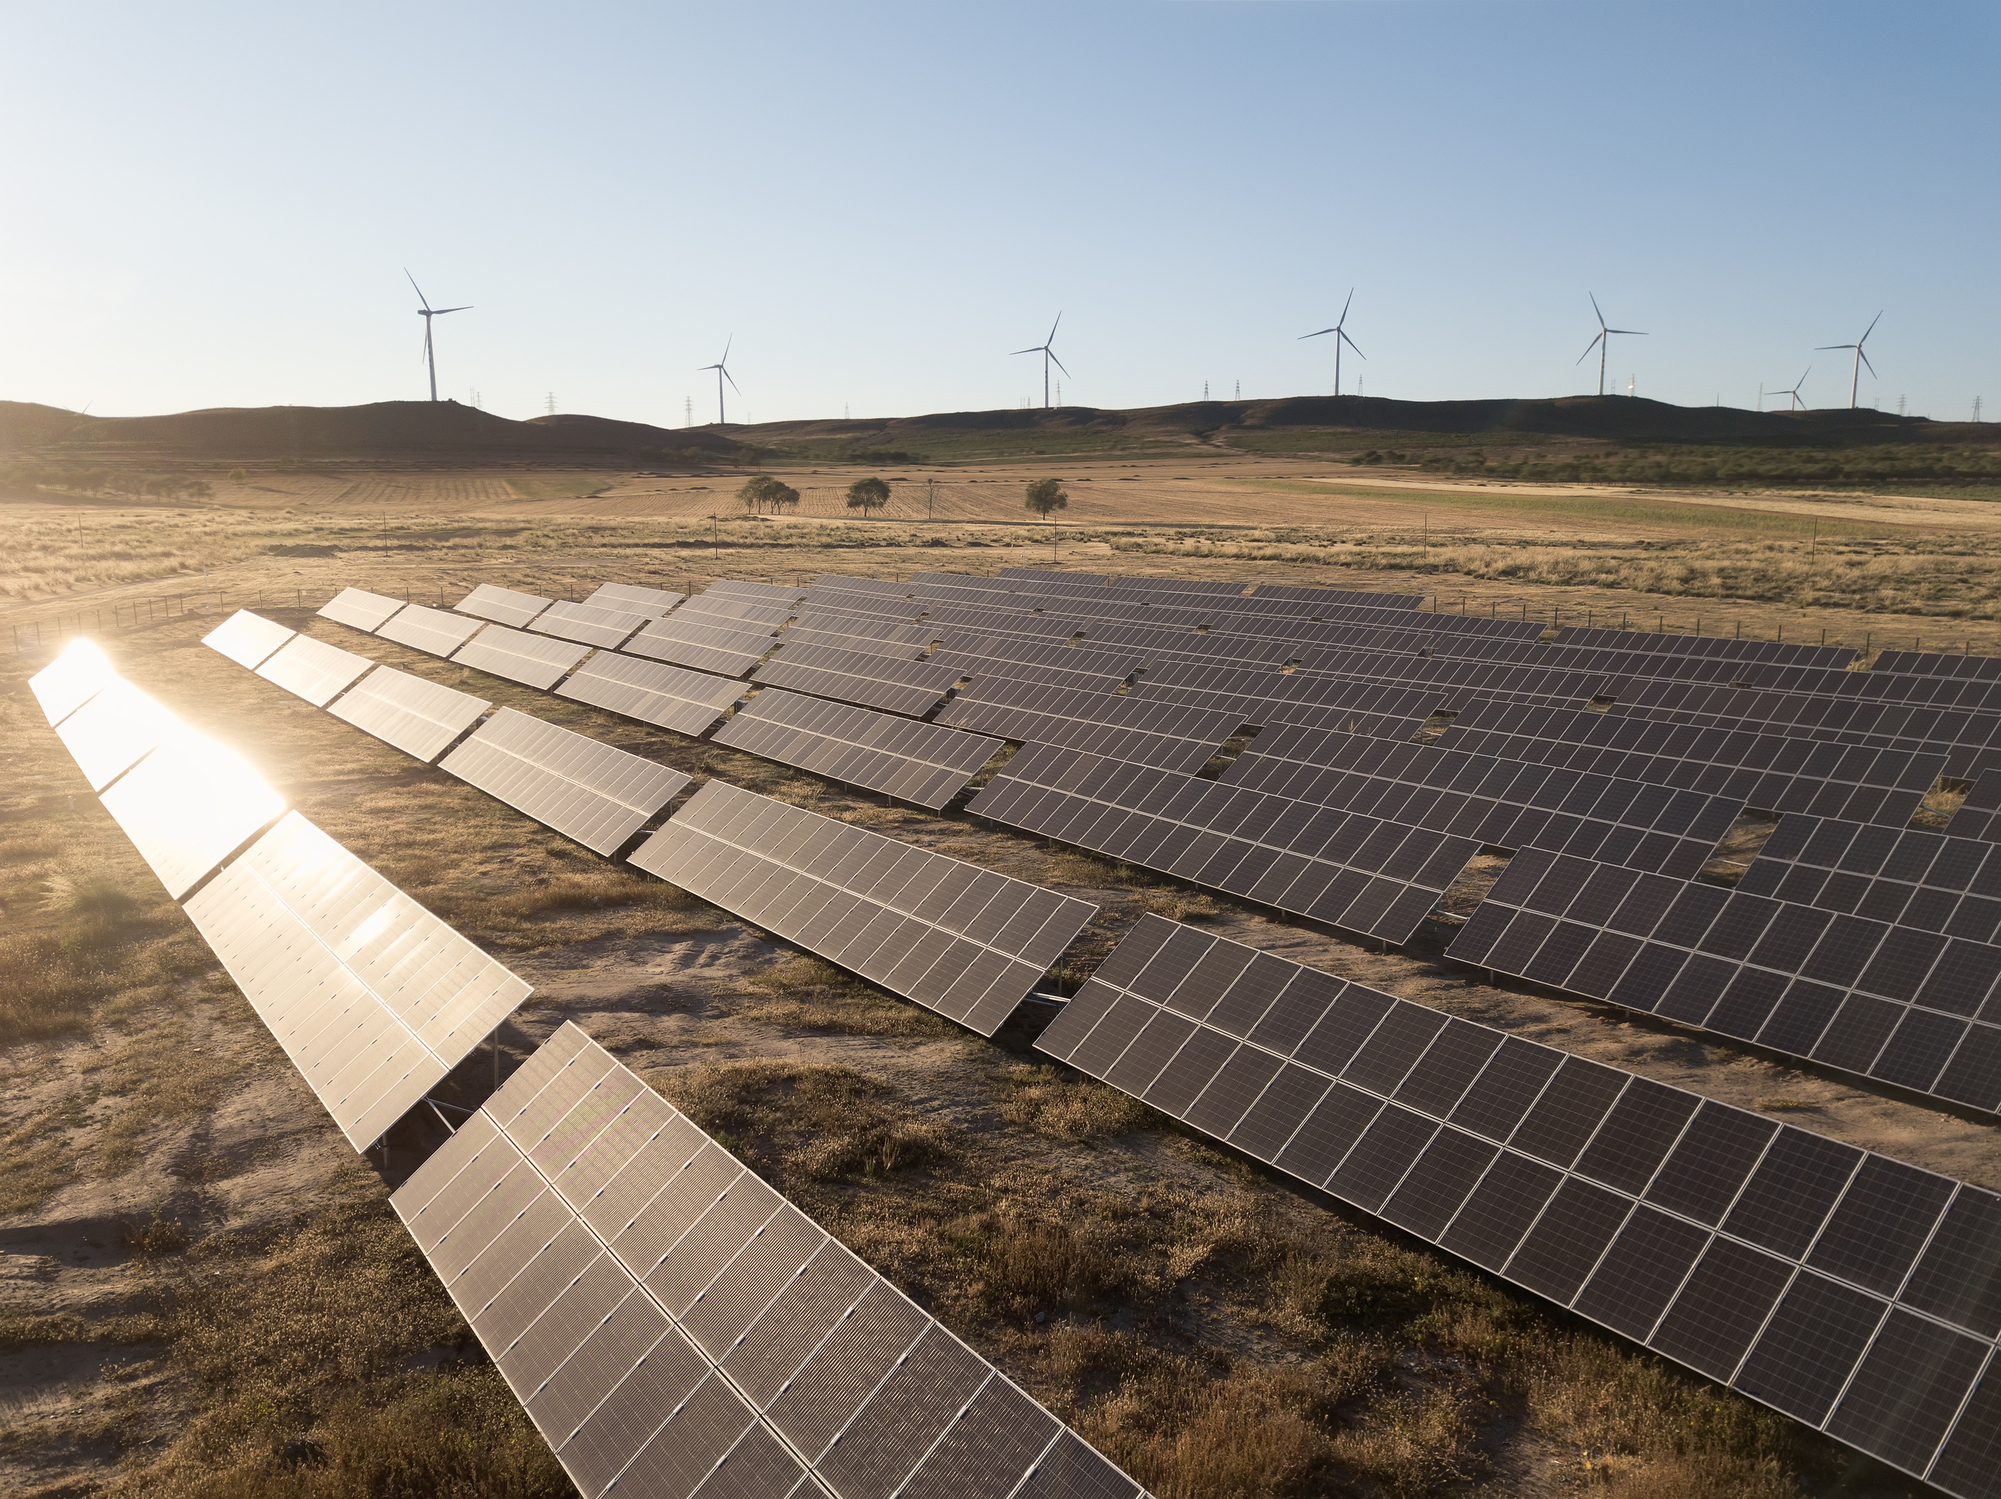 Carbon markets could help drive investment for renewable energy projects, such as solar power plants.